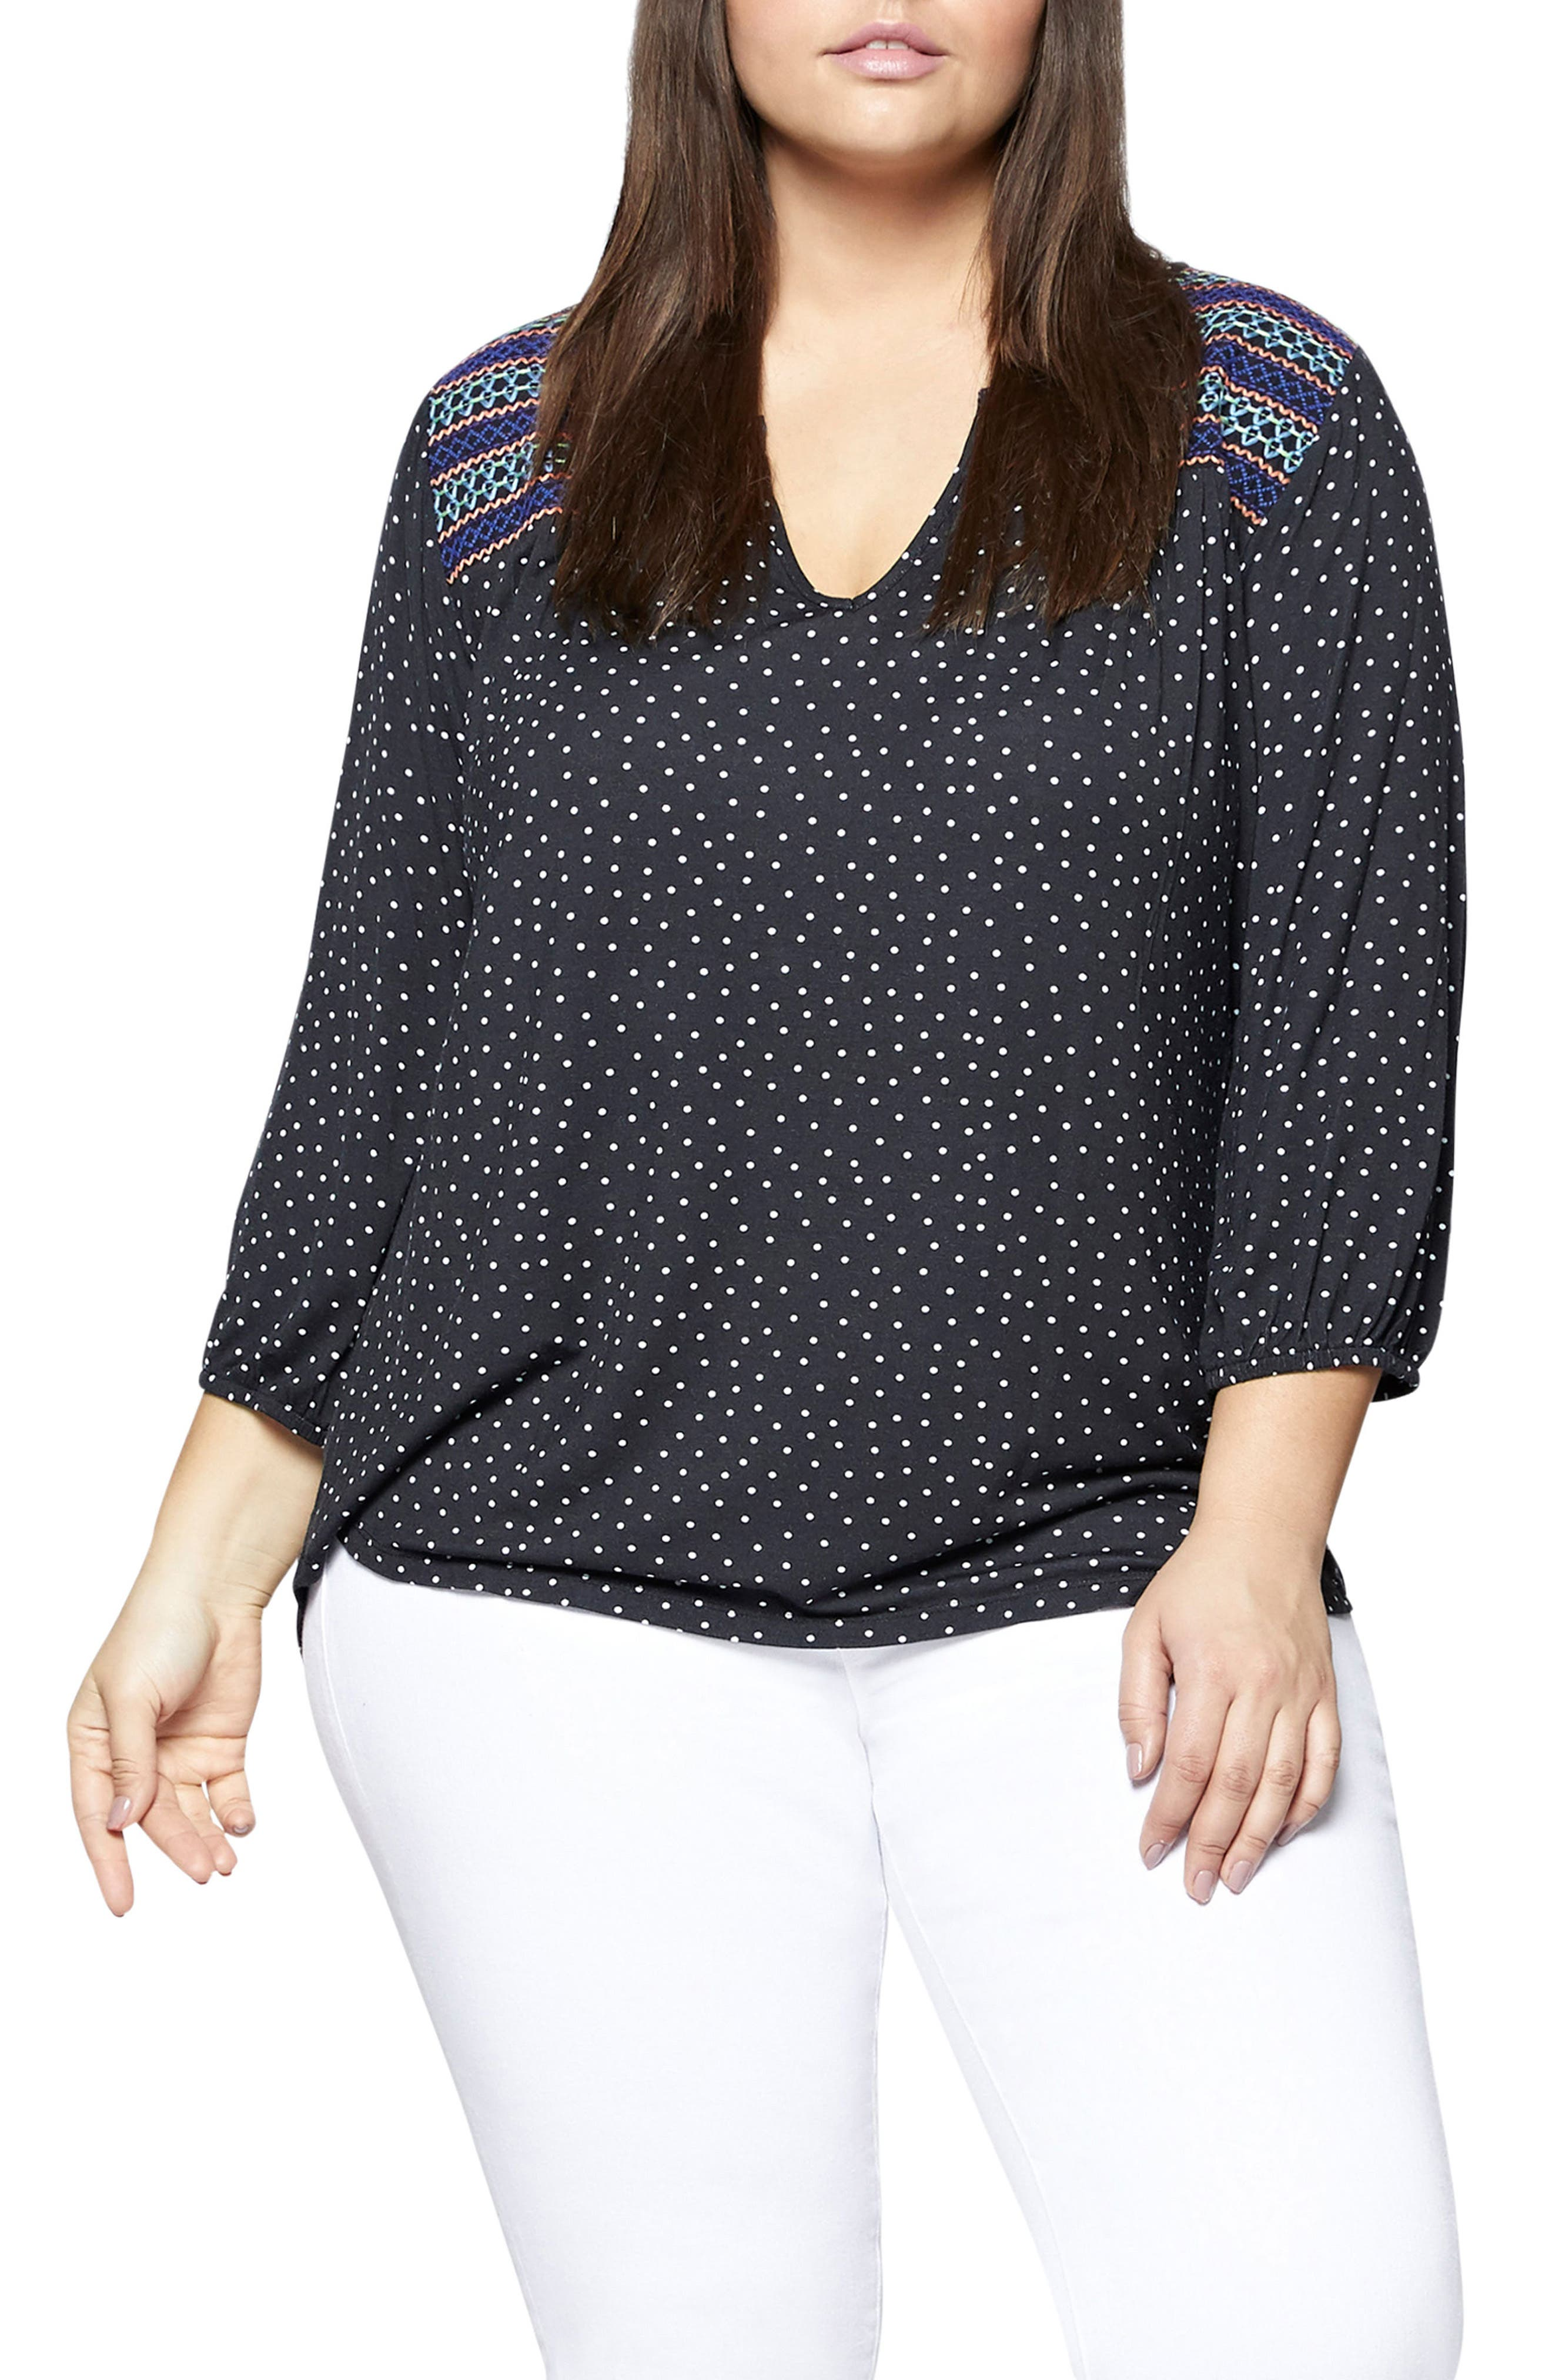 Anabelle Embroidered Knit Top,                         Main,                         color, Black Polka Dot